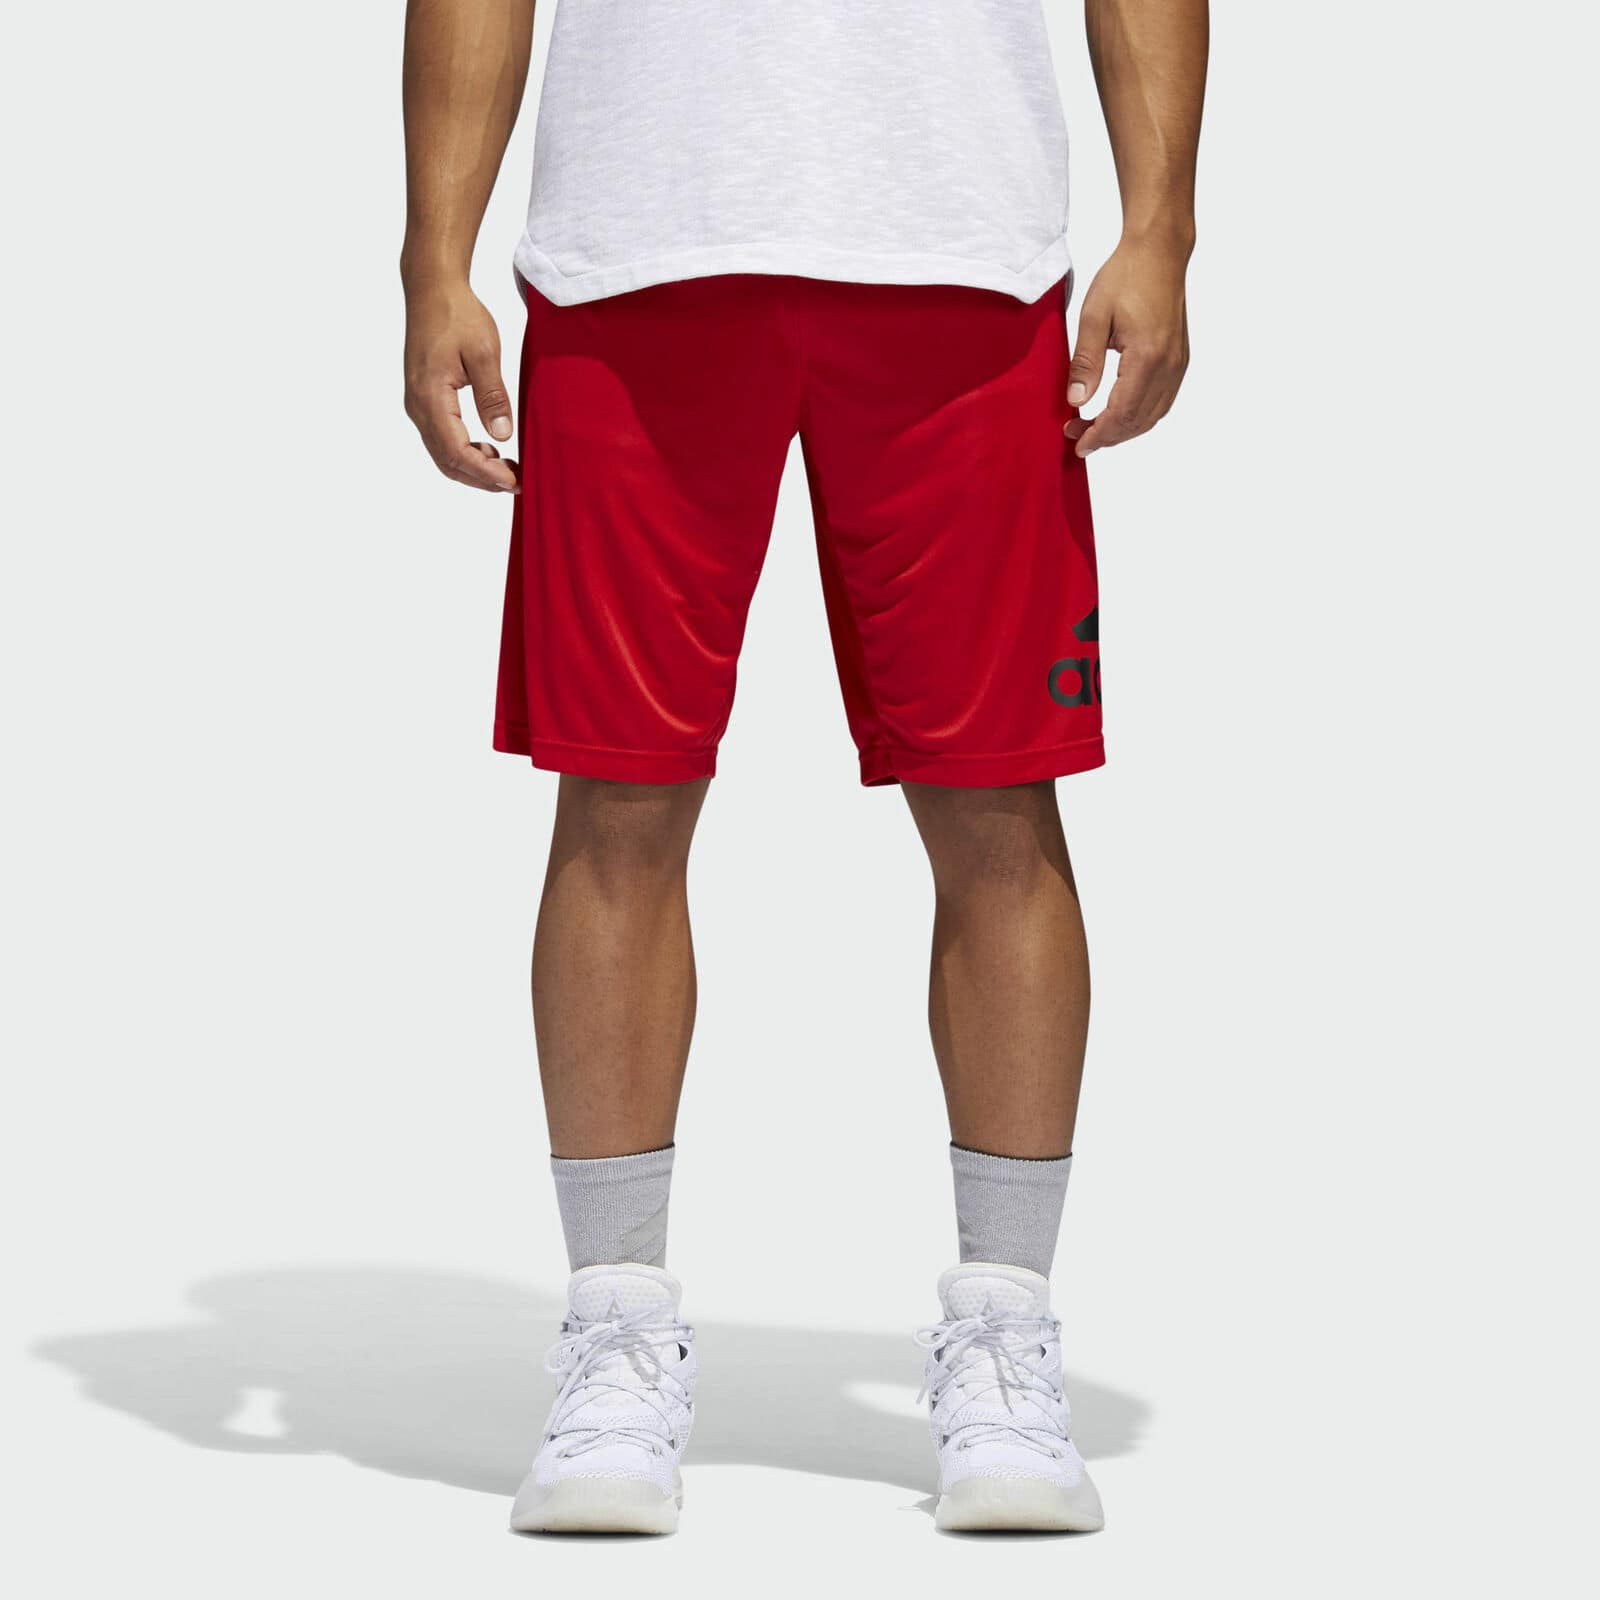 adidas Crazylight Men's Shorts (Scarlet): 2 for $22.50 or adidas Ultimate Men's 2.0 Tee: 2 for $19.50 + Free Shipping